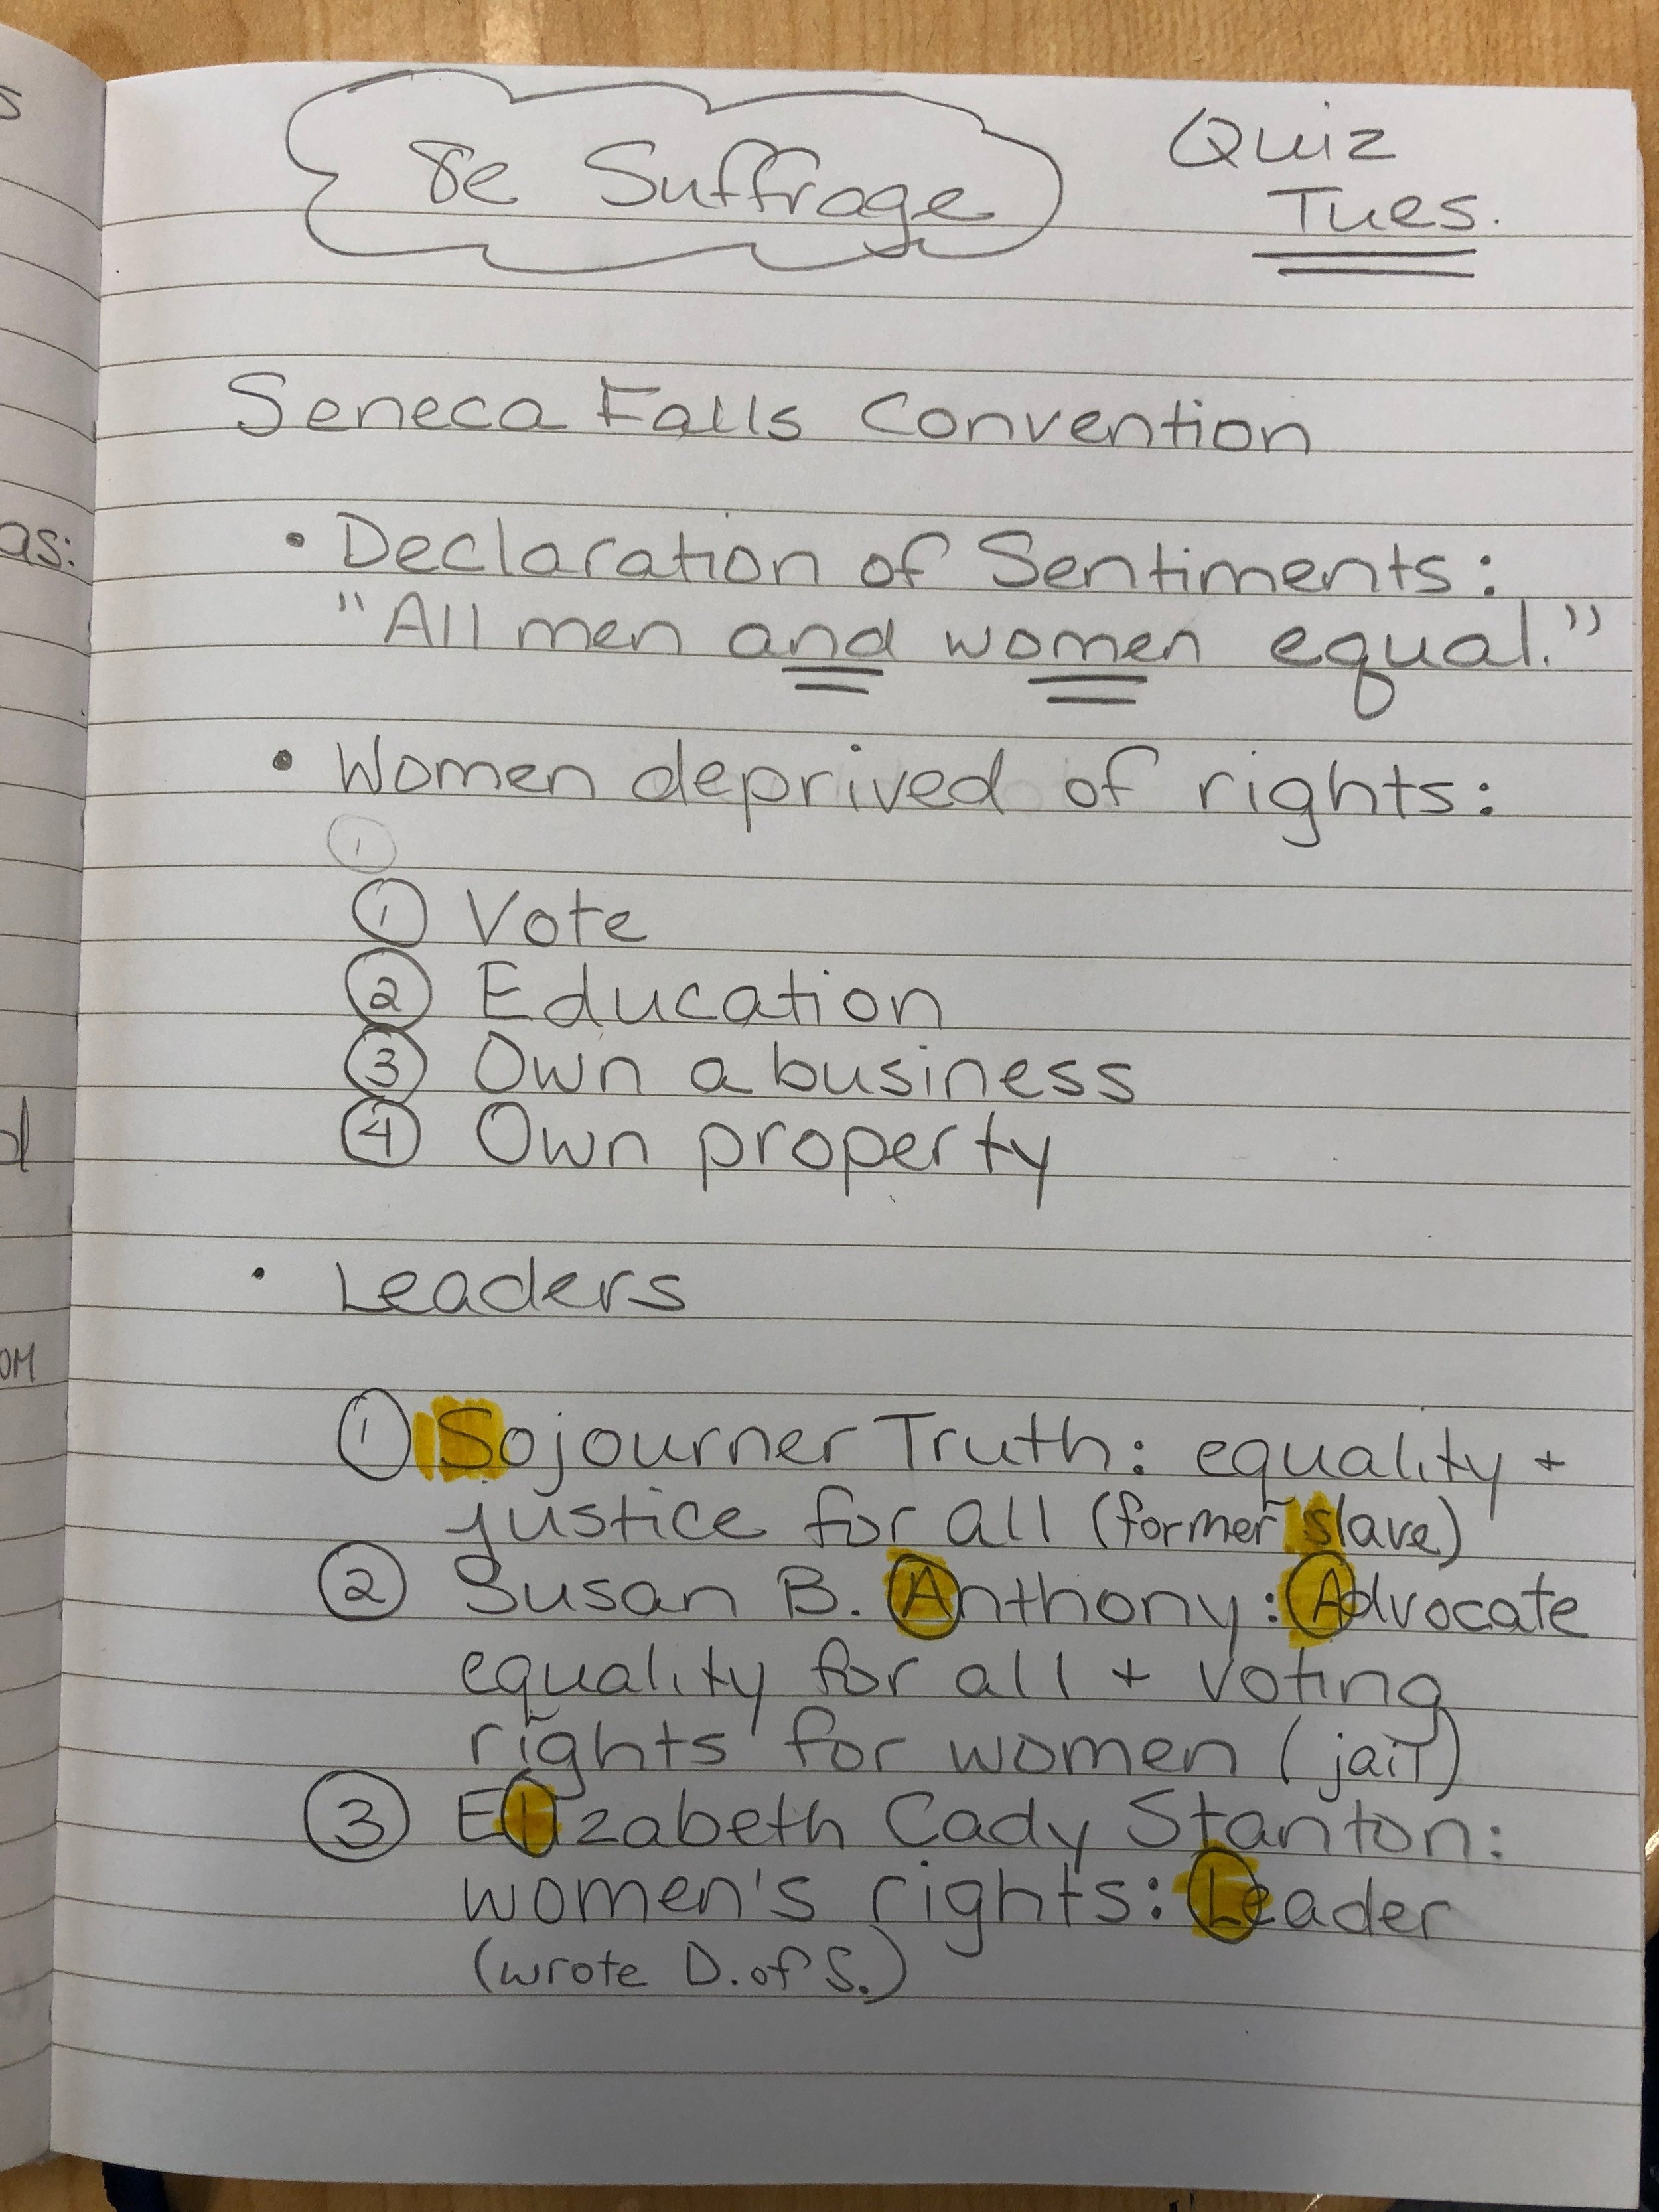 8e Suffrage notes.jpeg